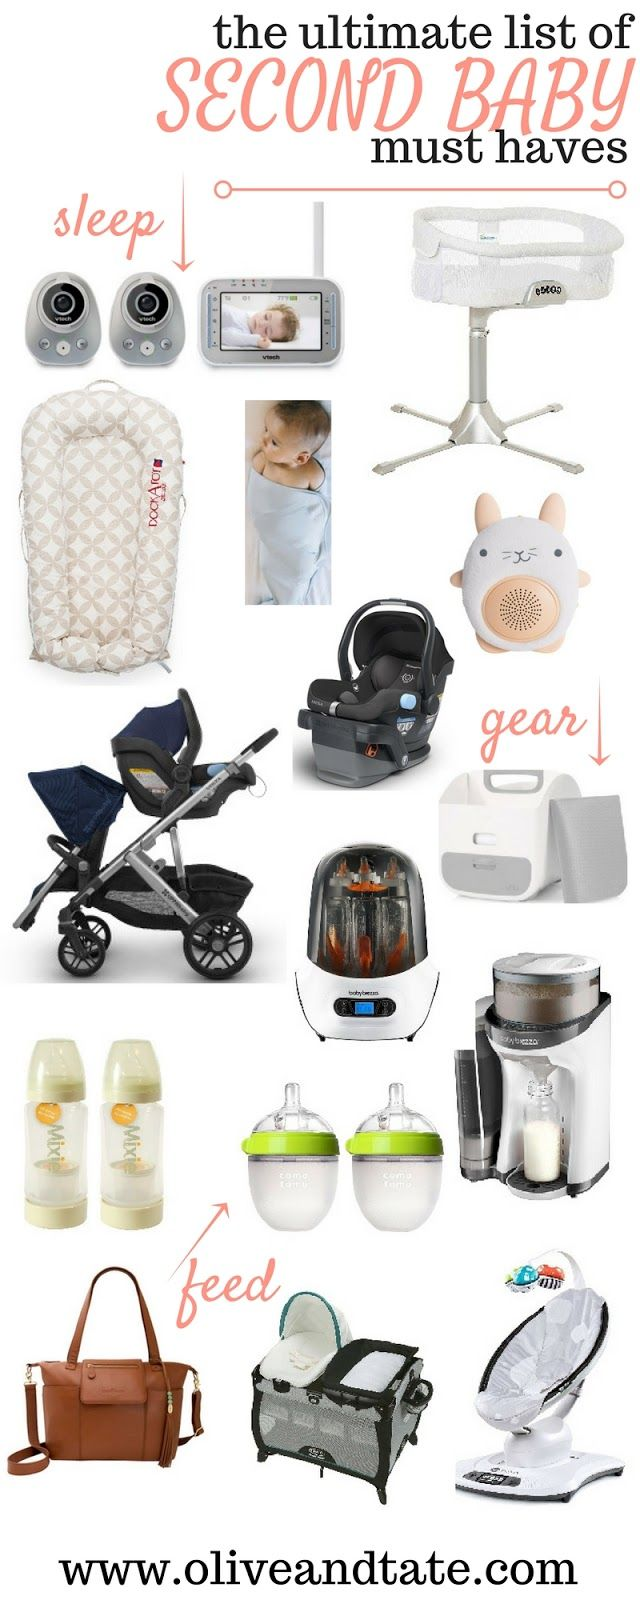 The Ultimate List of Second Baby Must-Haves with Gugu Guru